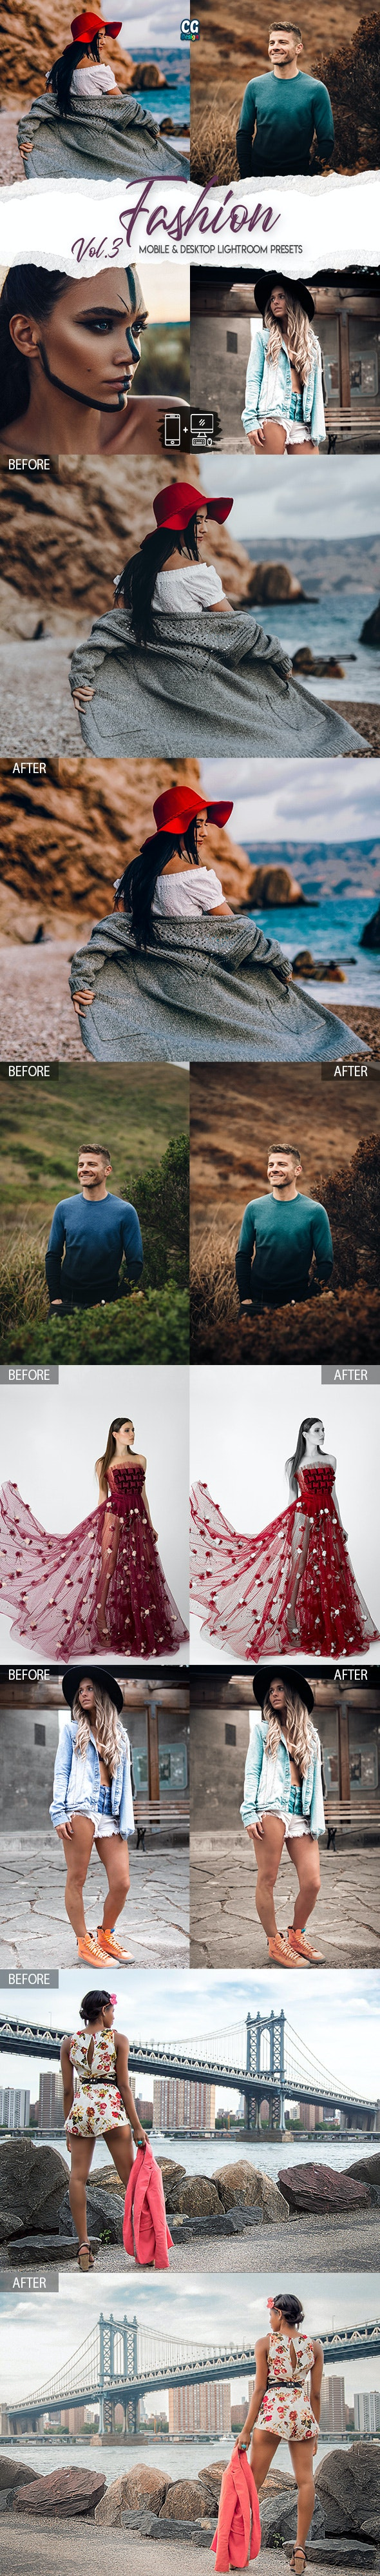 Fashion Lightroom Presets Vol. 3 - 15 Premium Lightroom Presets - Lightroom Presets Add-ons